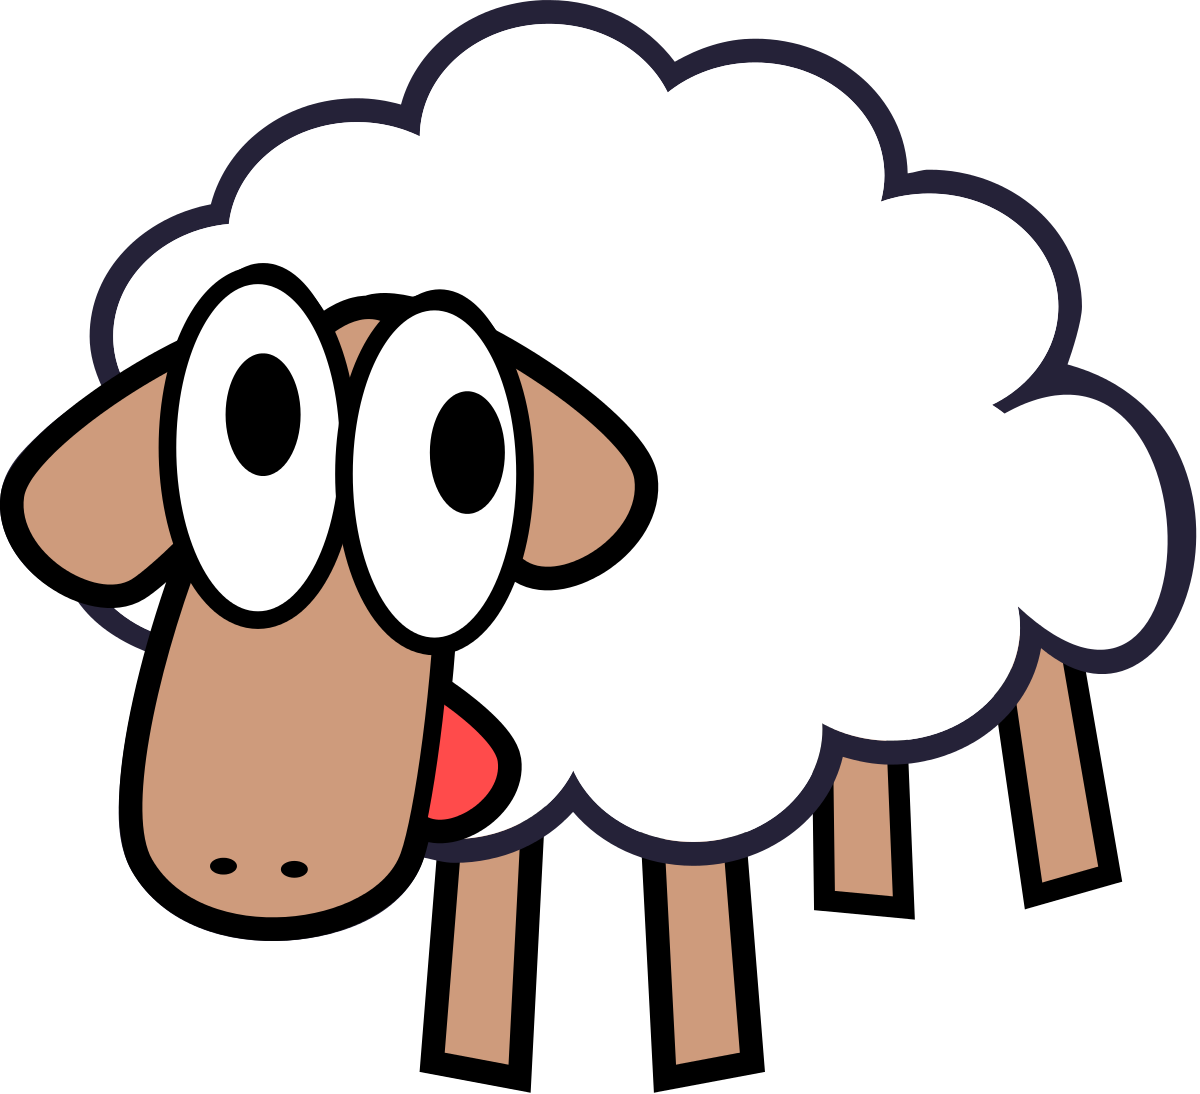 clip art download Free on dumielauxepices net. Lamb clipart baby lamb.